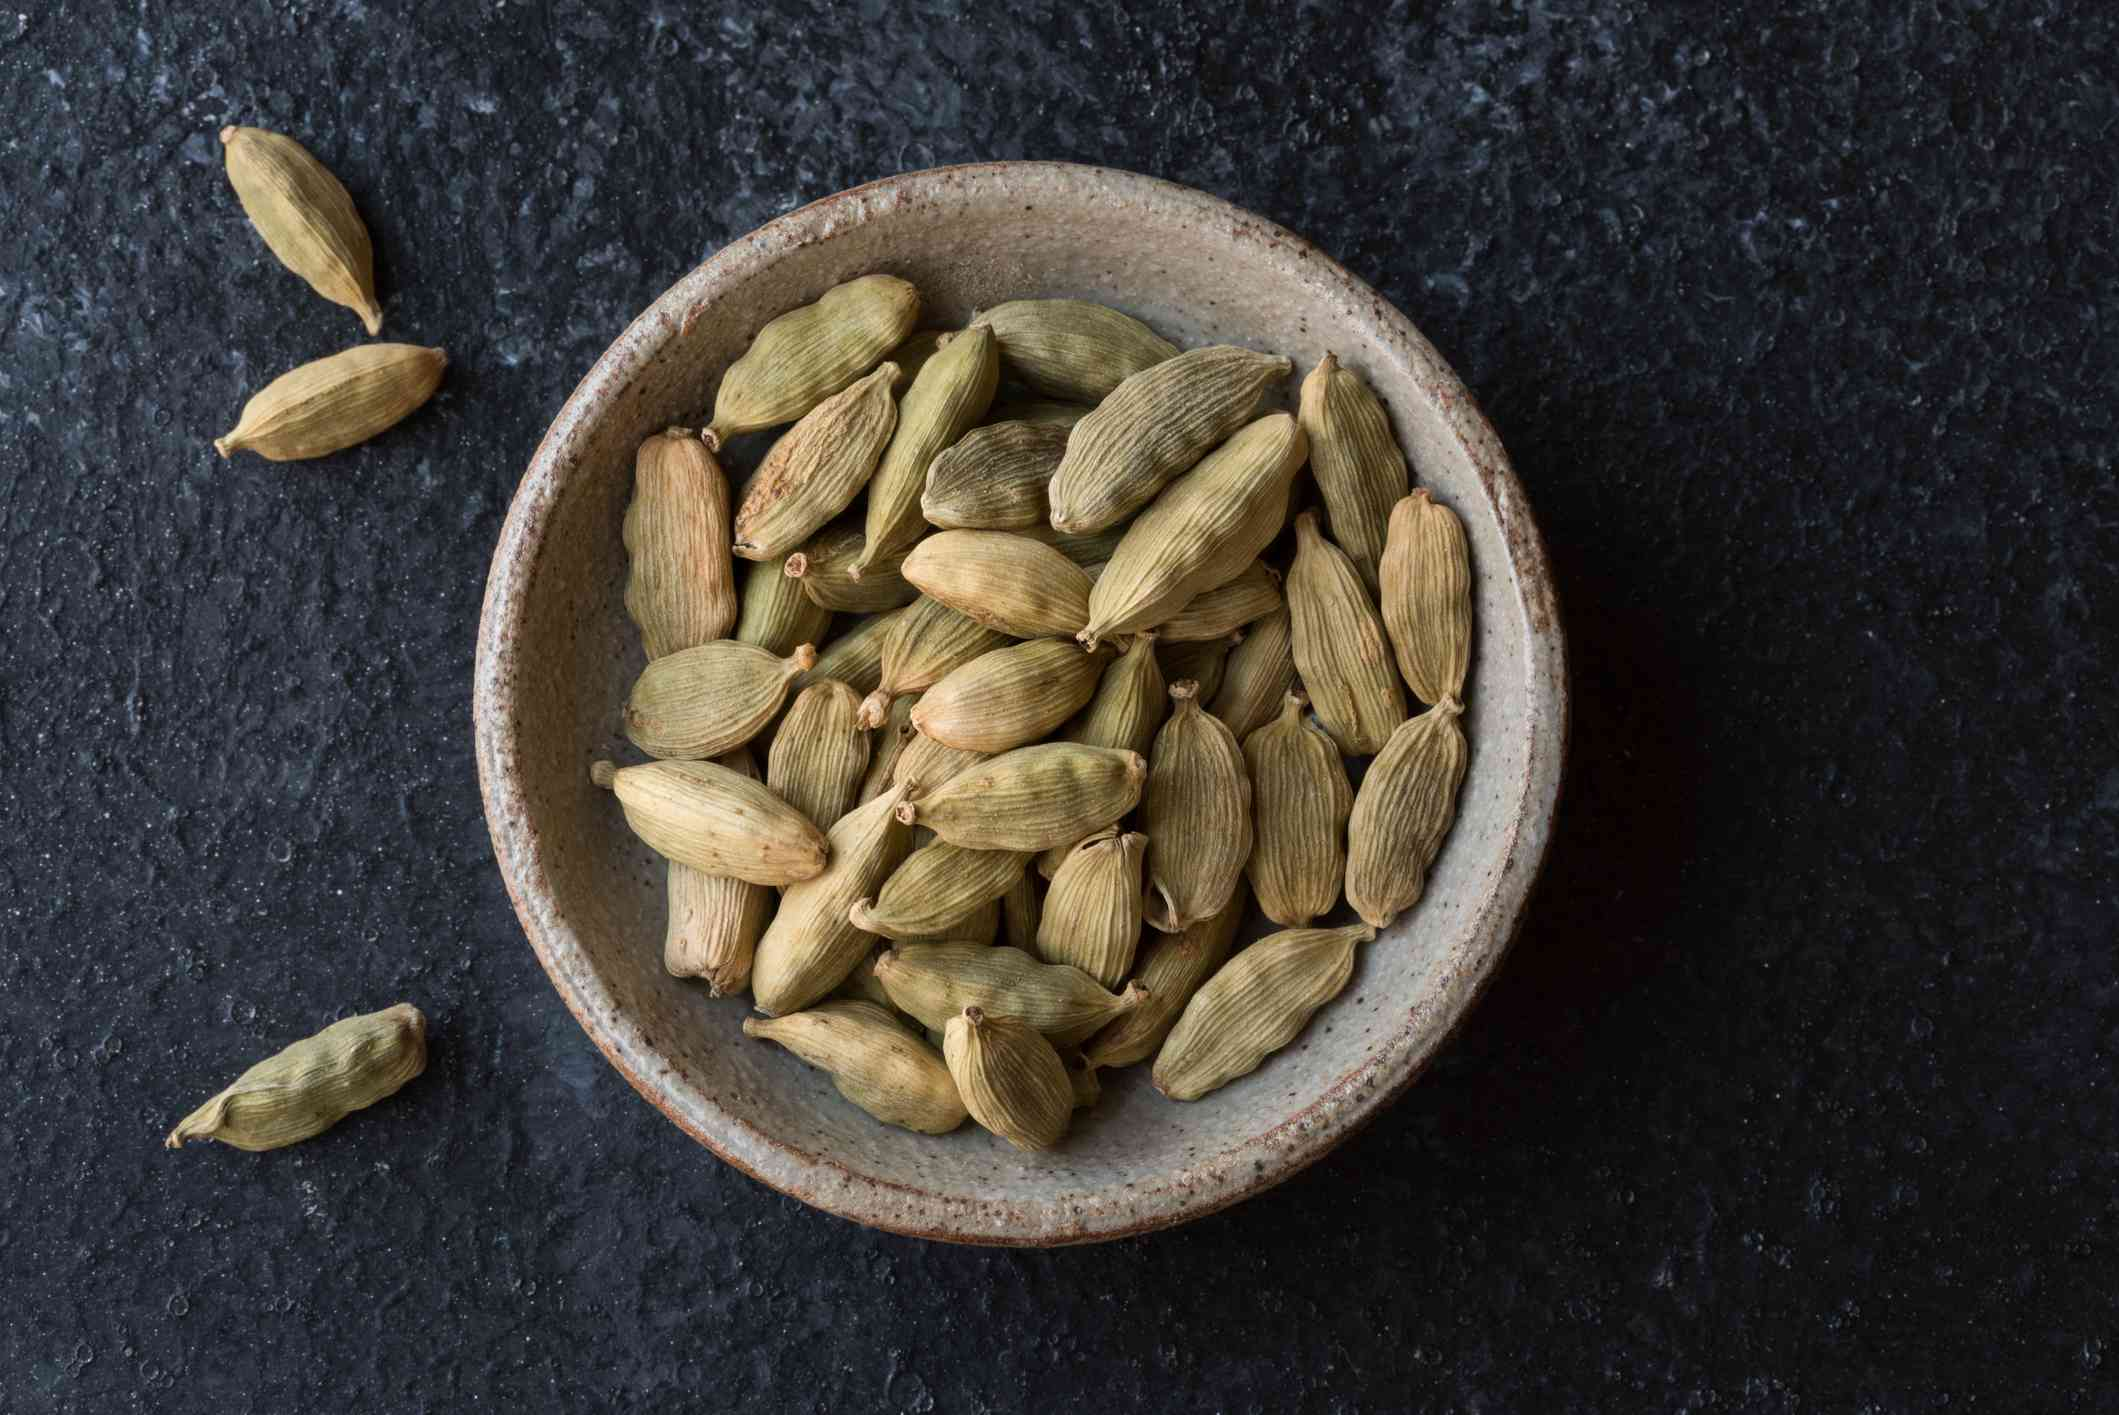 Directly Above Shot Of Cardamoms In Bowl On Table